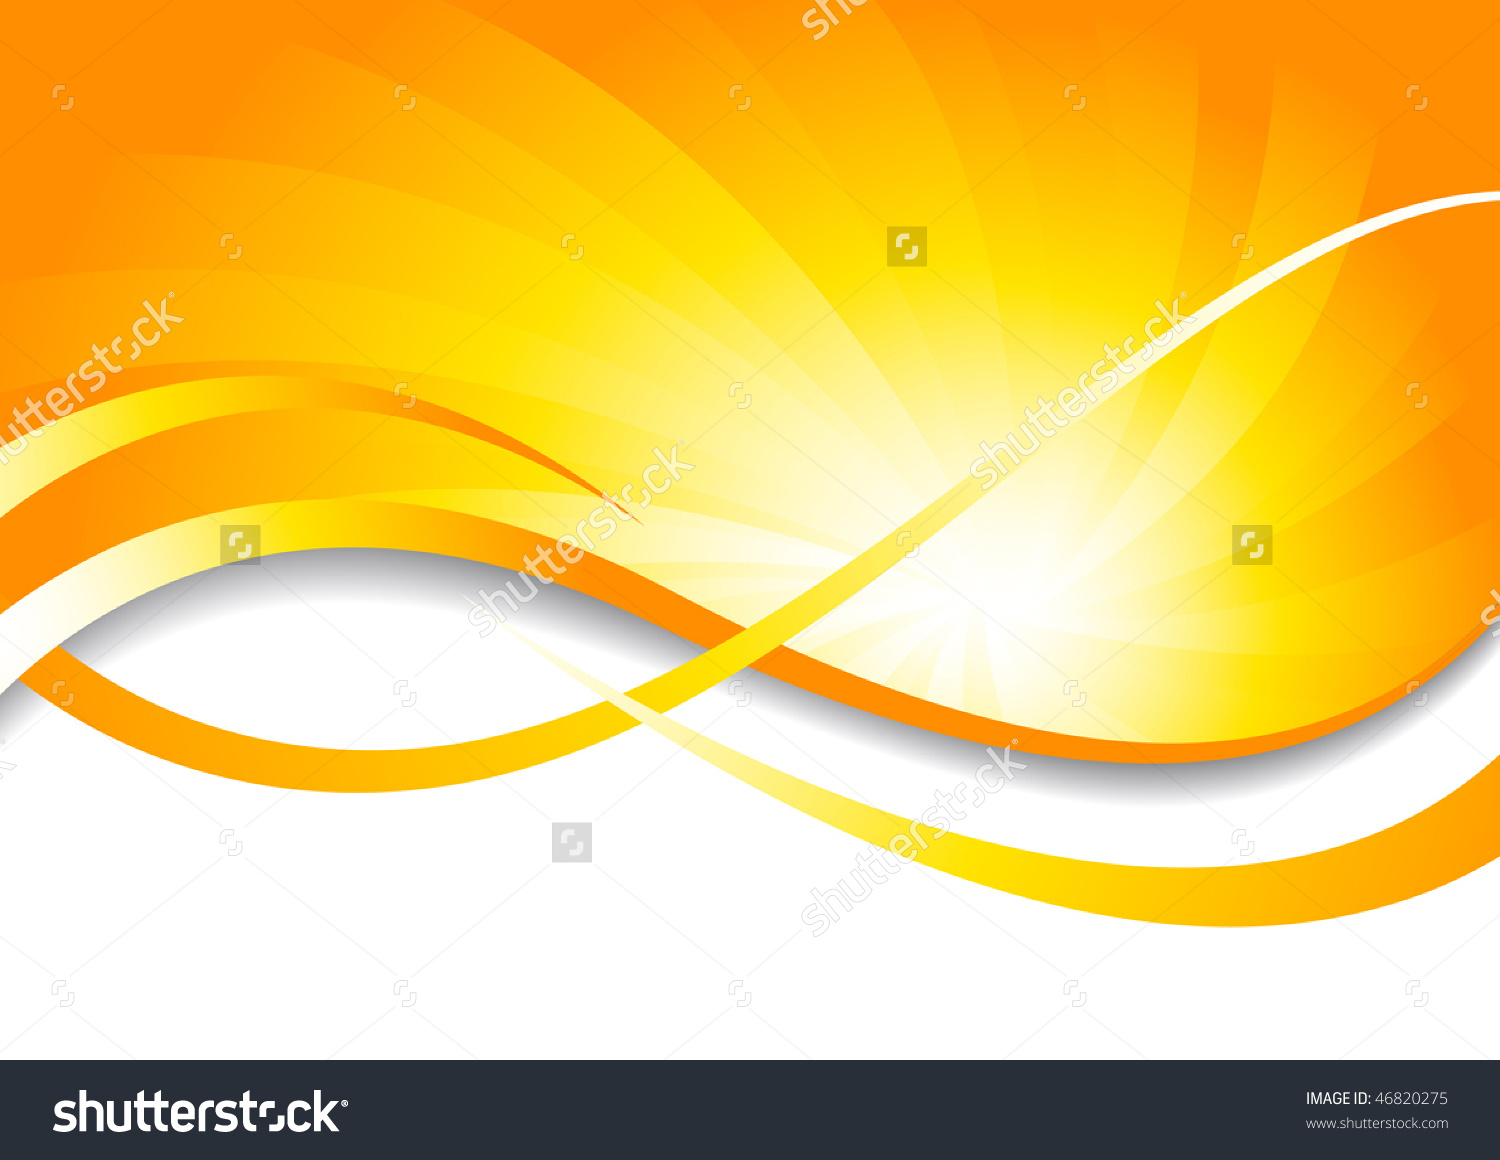 Background color clipart #11